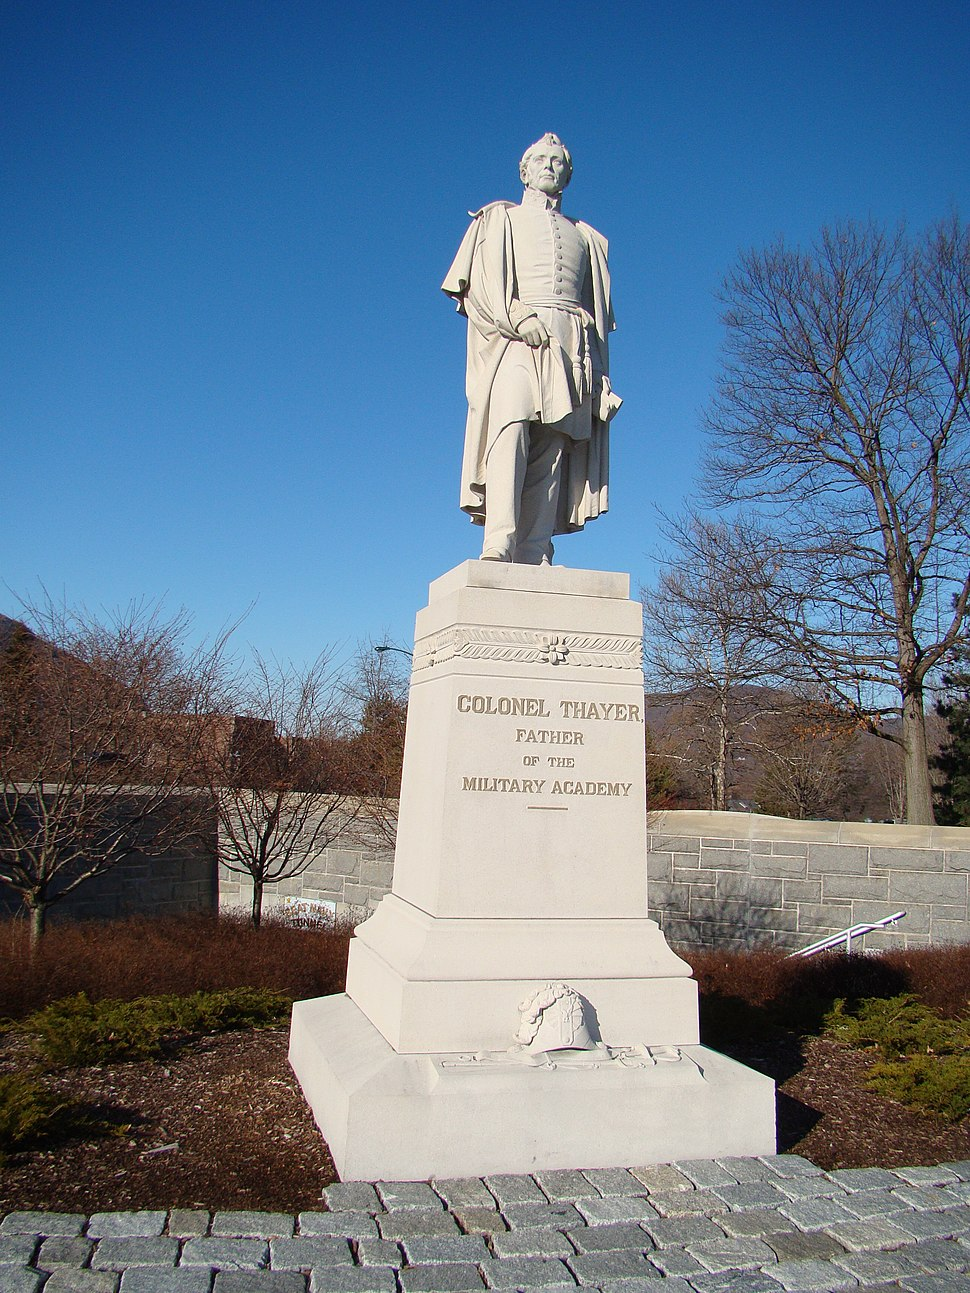 Thayer Statue at West Point